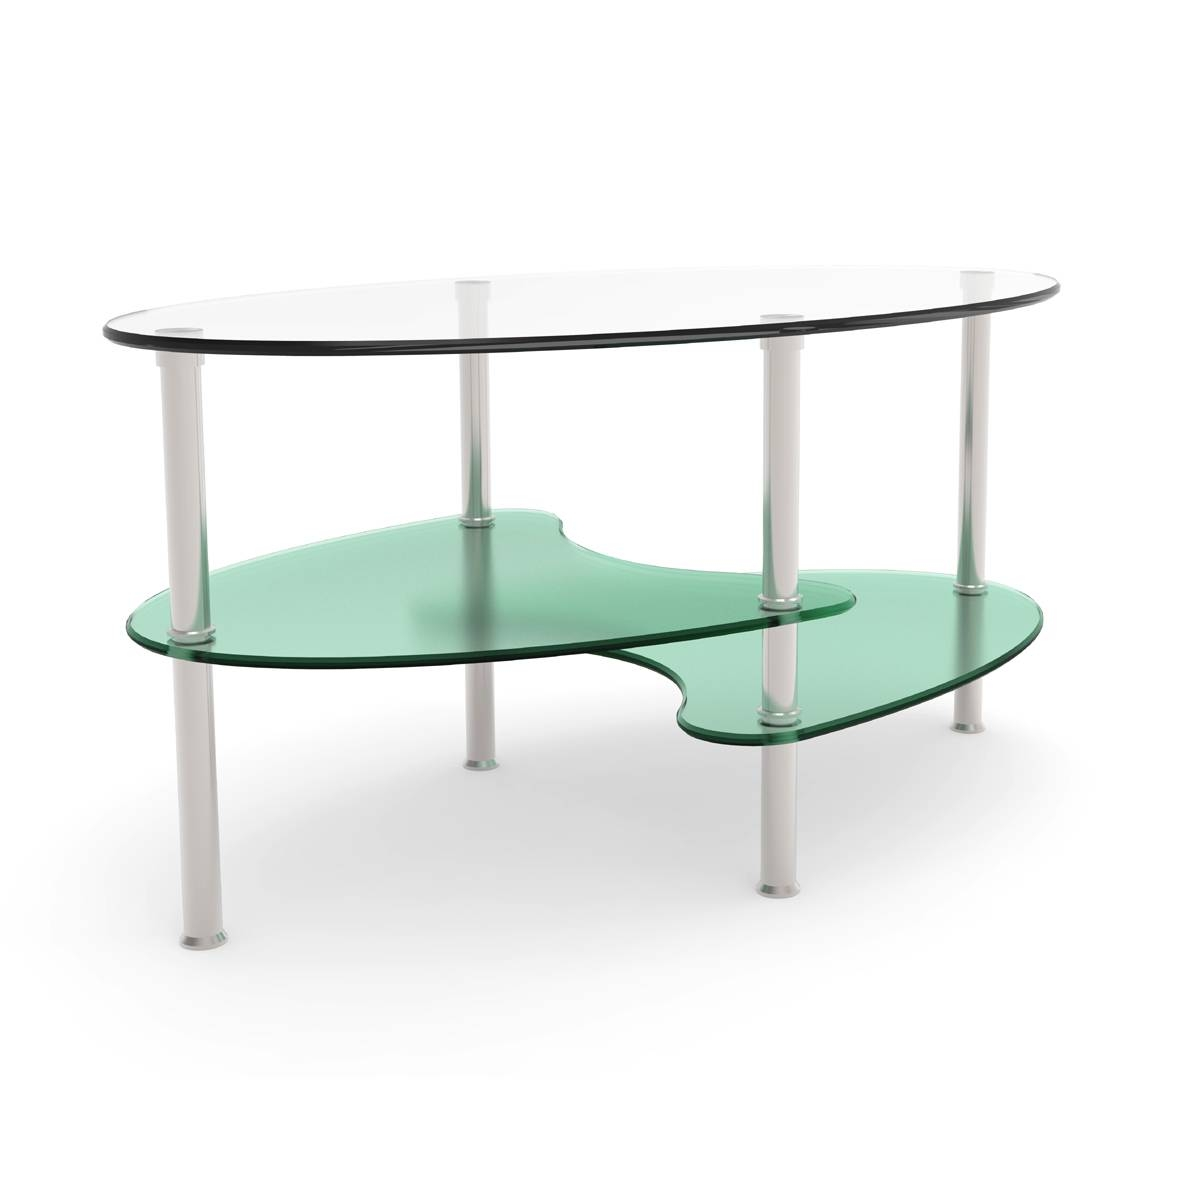 Ryan Rove Fenton 38 Inch Oval Two Tier Glass Coffee Table regarding Oval Glass Coffee Tables (Image 27 of 30)